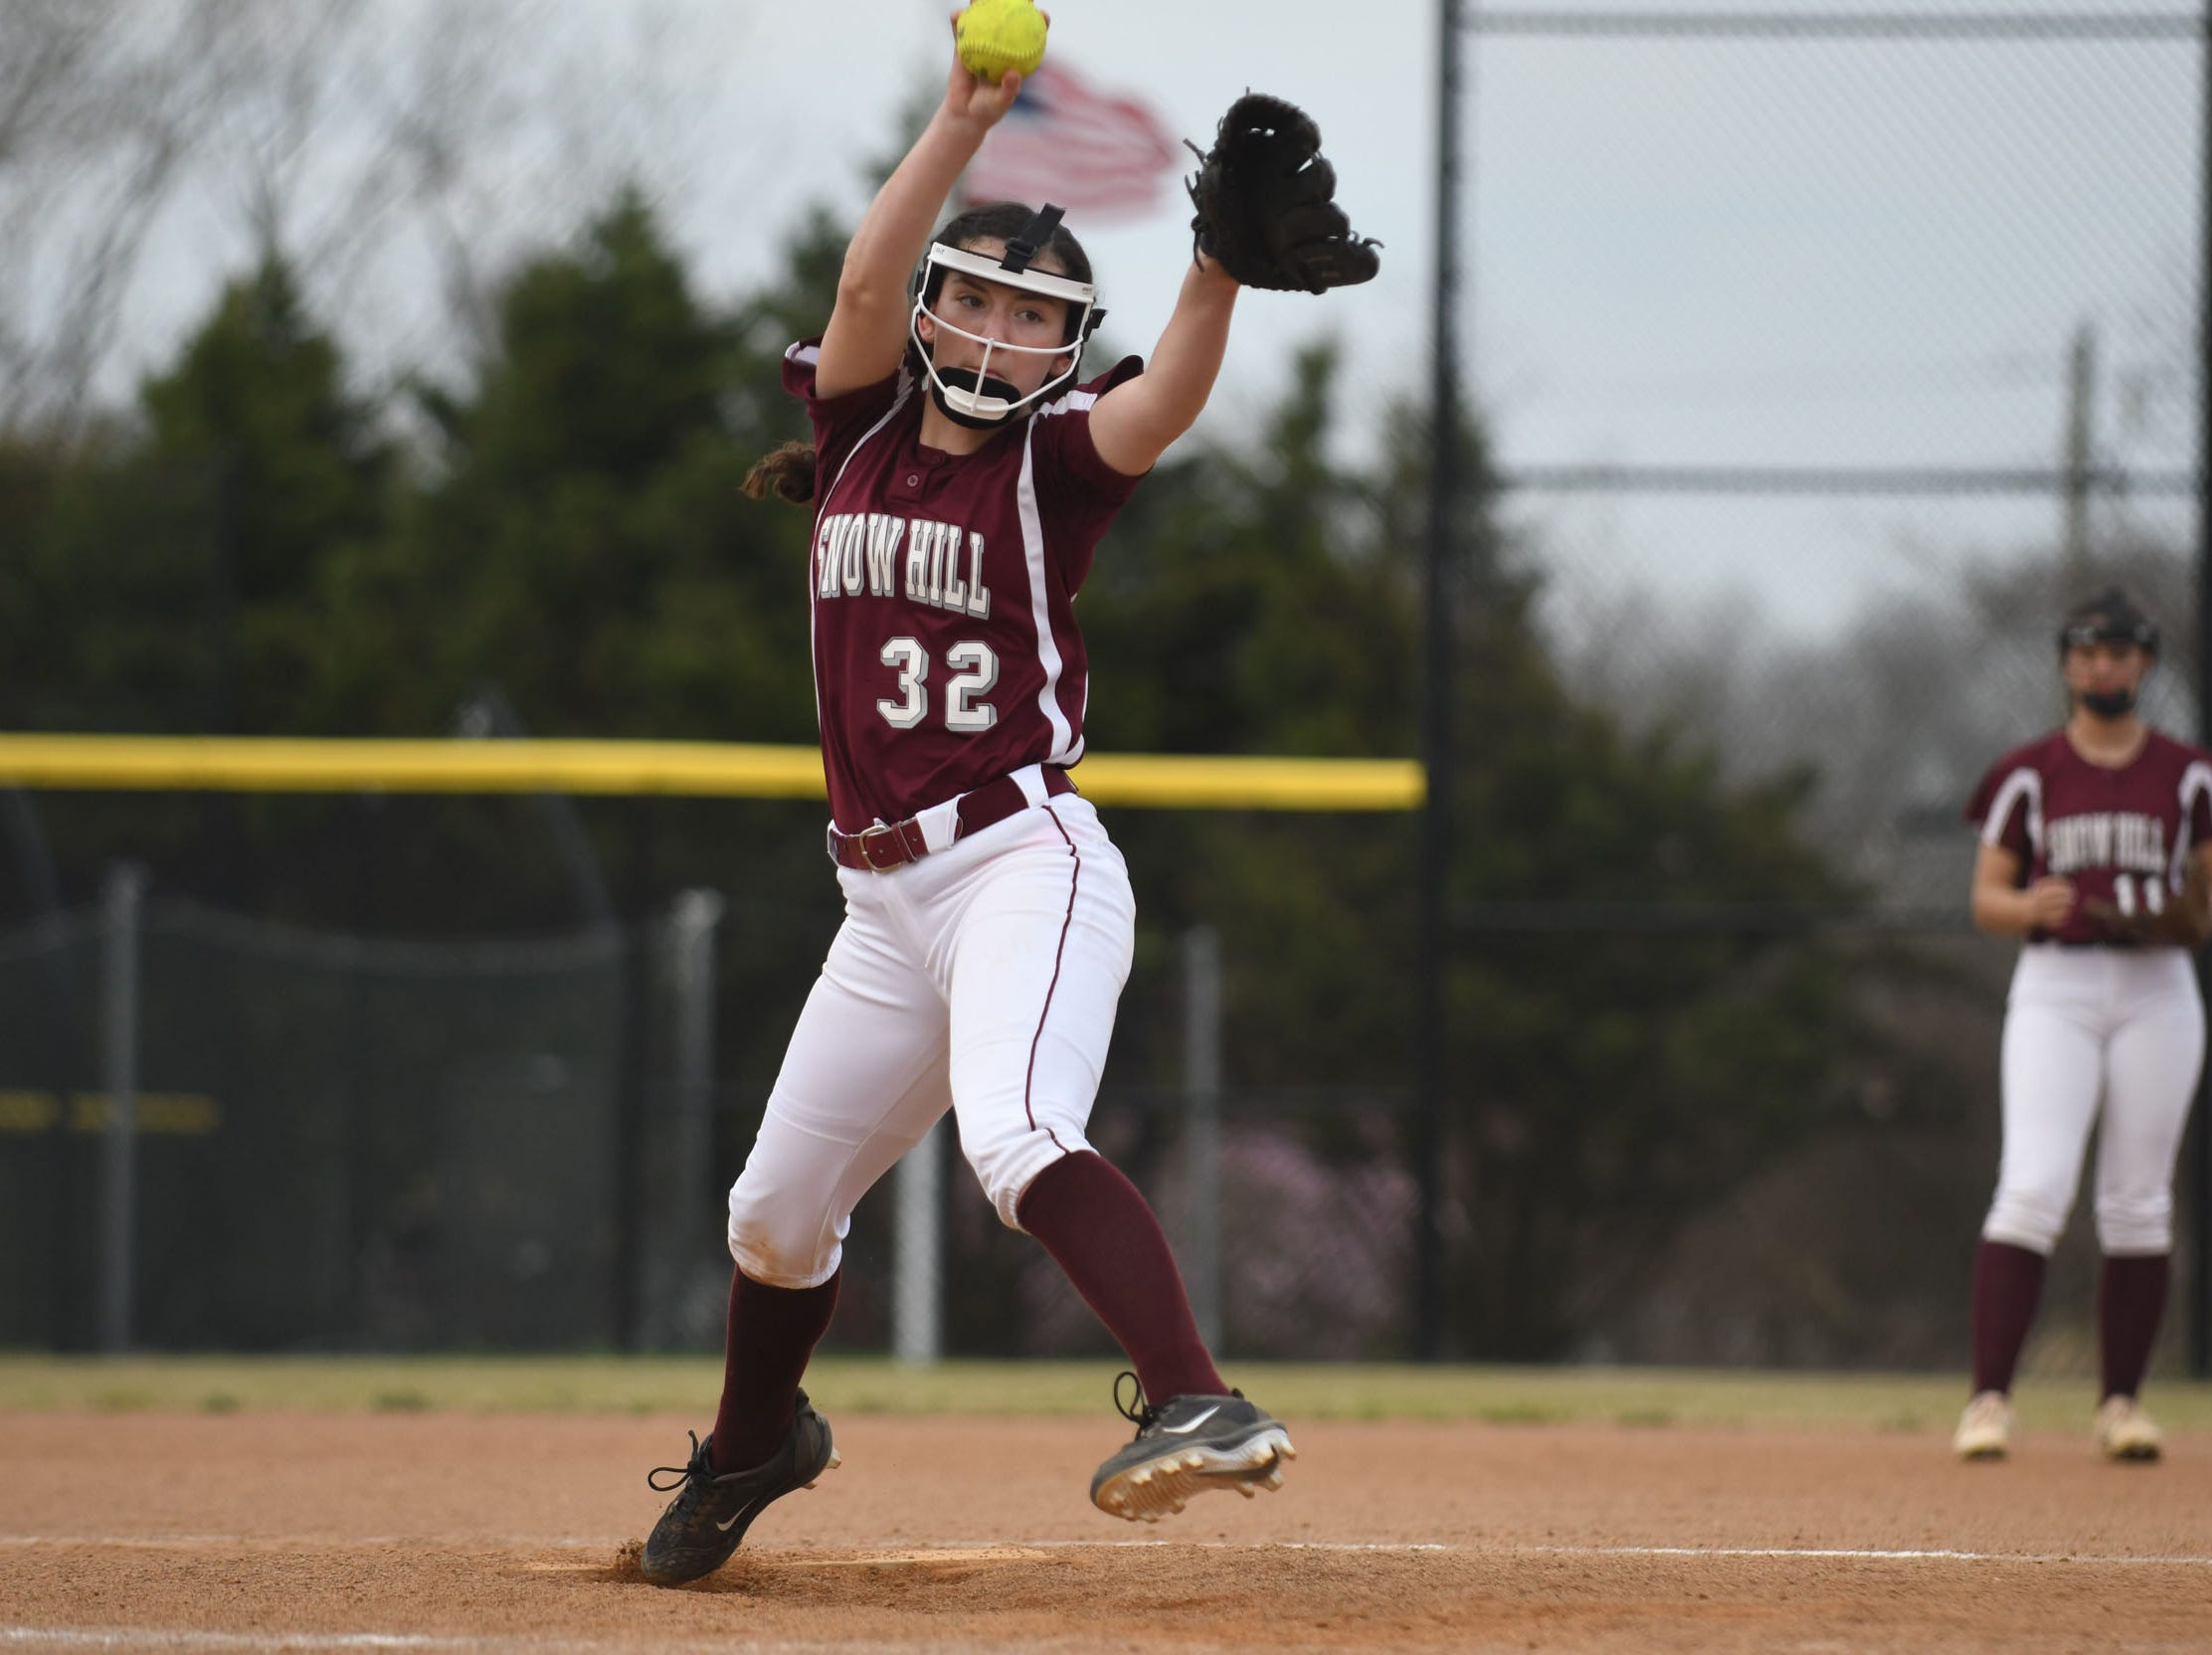 Snow Hill's Lilly Covington on the mound against Mardela on Monday, April 8, 2019 in Snow Hill, Md.